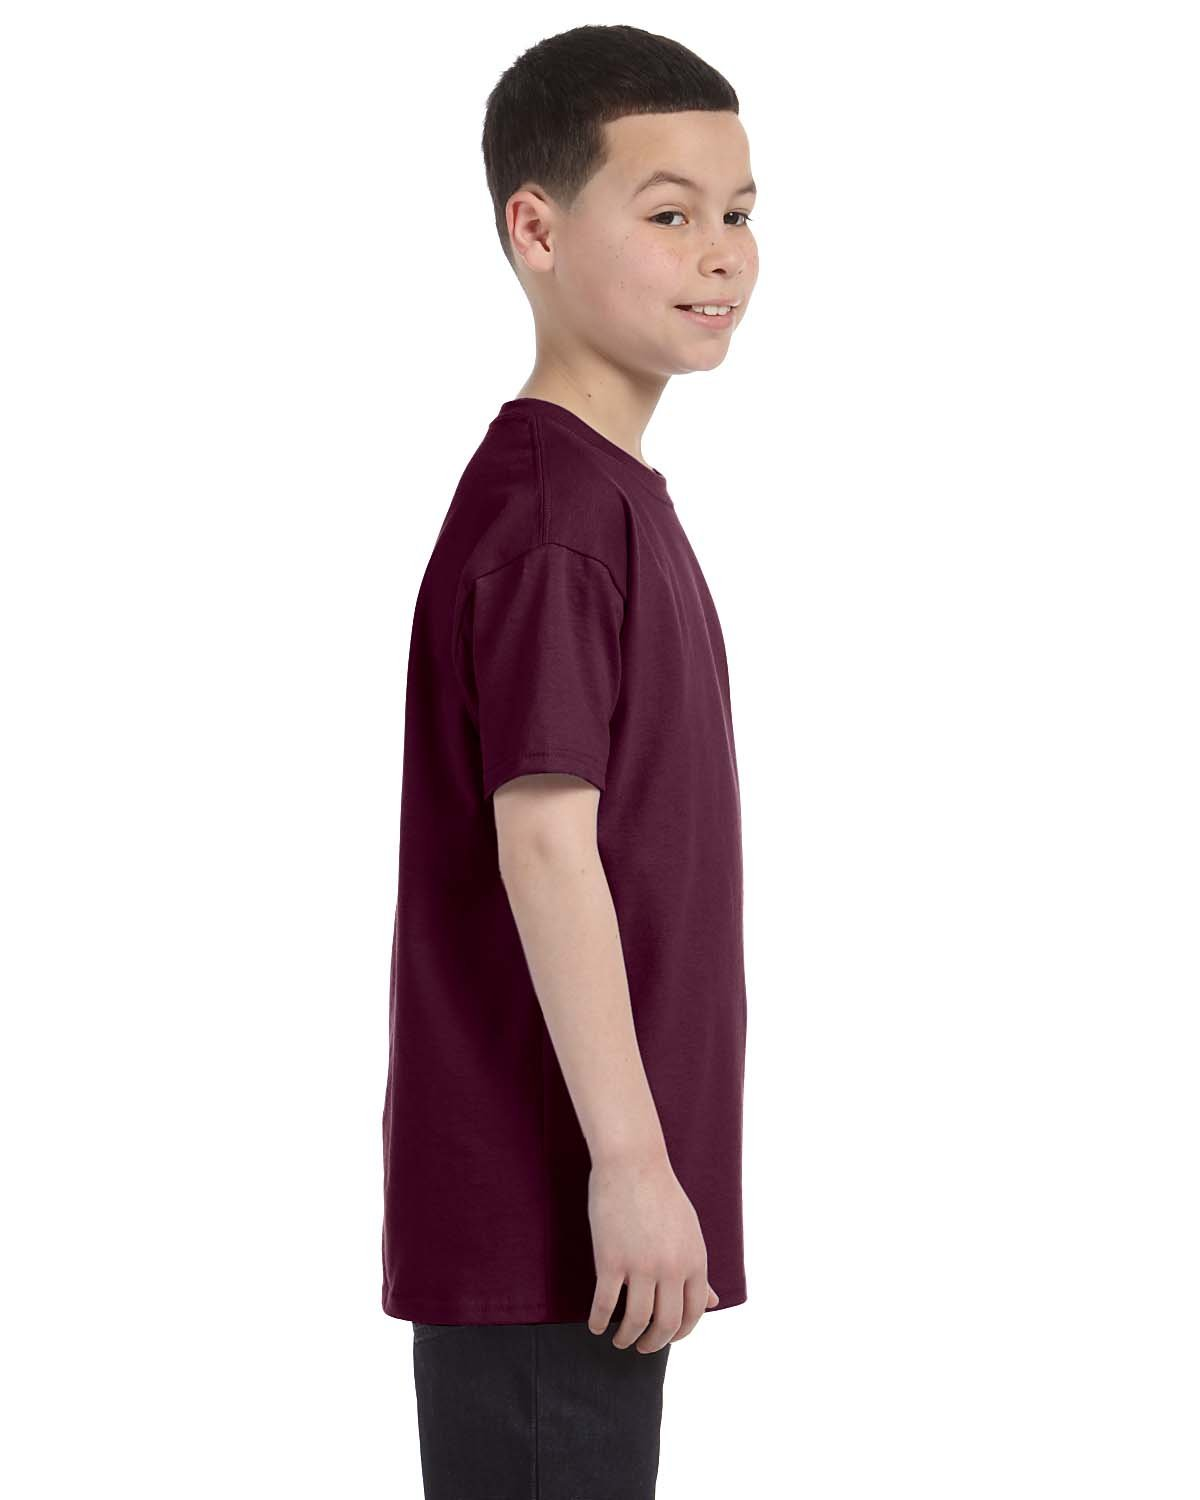 Boys cotton t-shirts.